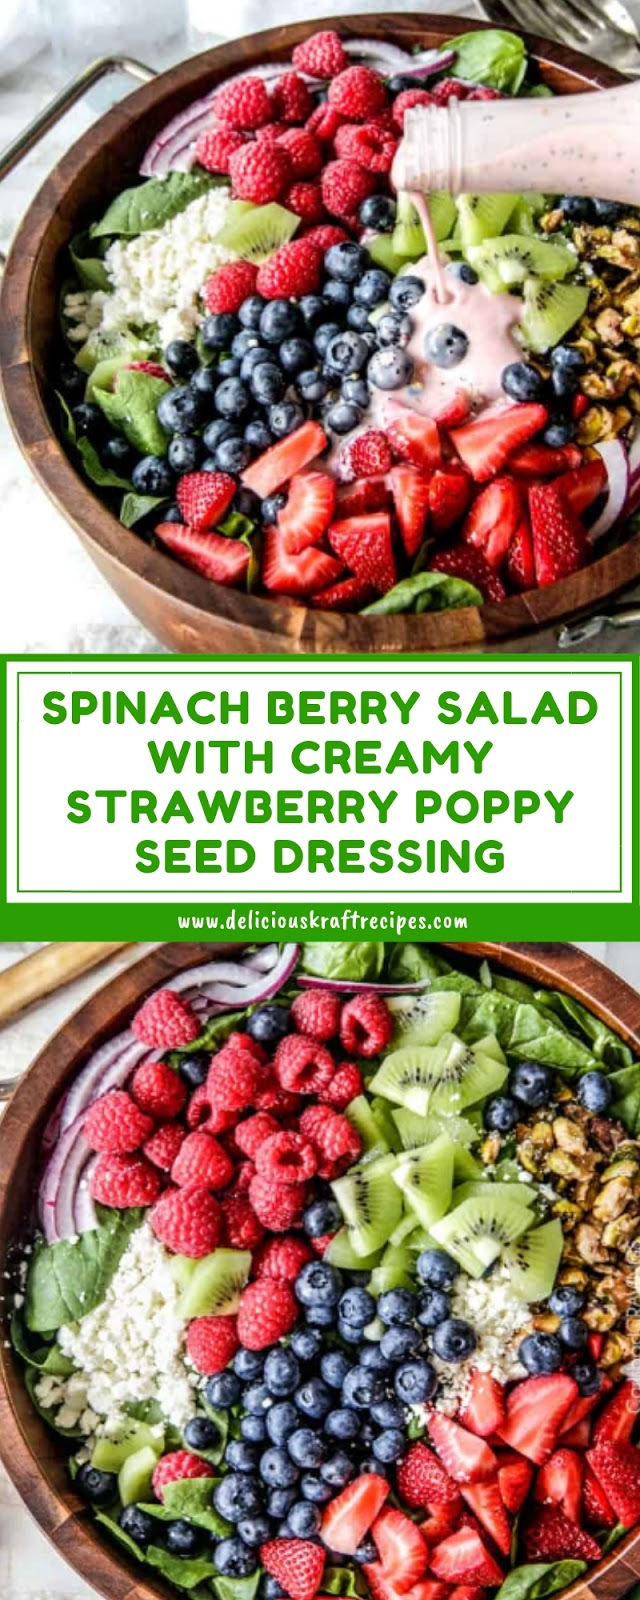 SPINACH BERRY SALAD WITH CREAMY STRAWBERRY POPPY SEED DRESSING